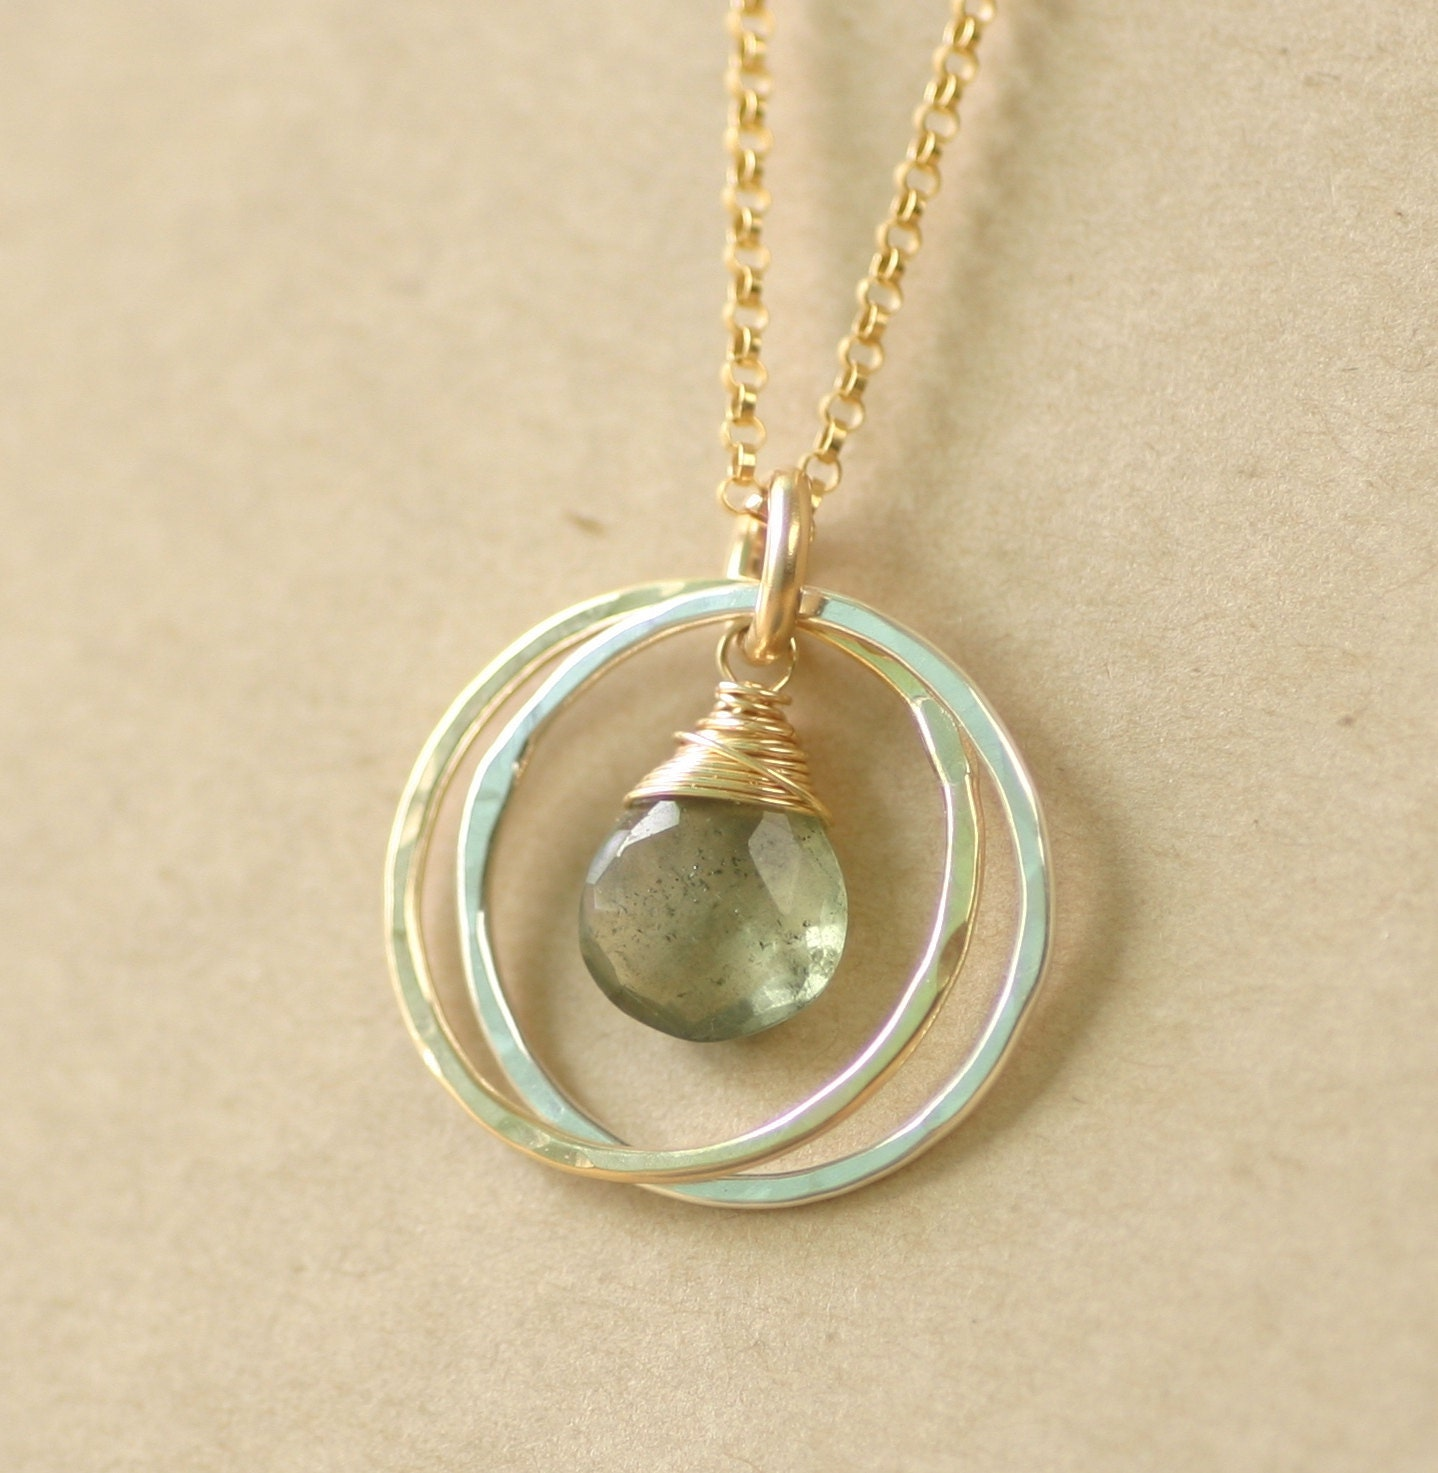 Aquamarine Necklaces: Aquamarine Necklace Sister Jewelry Best Friend Gift March